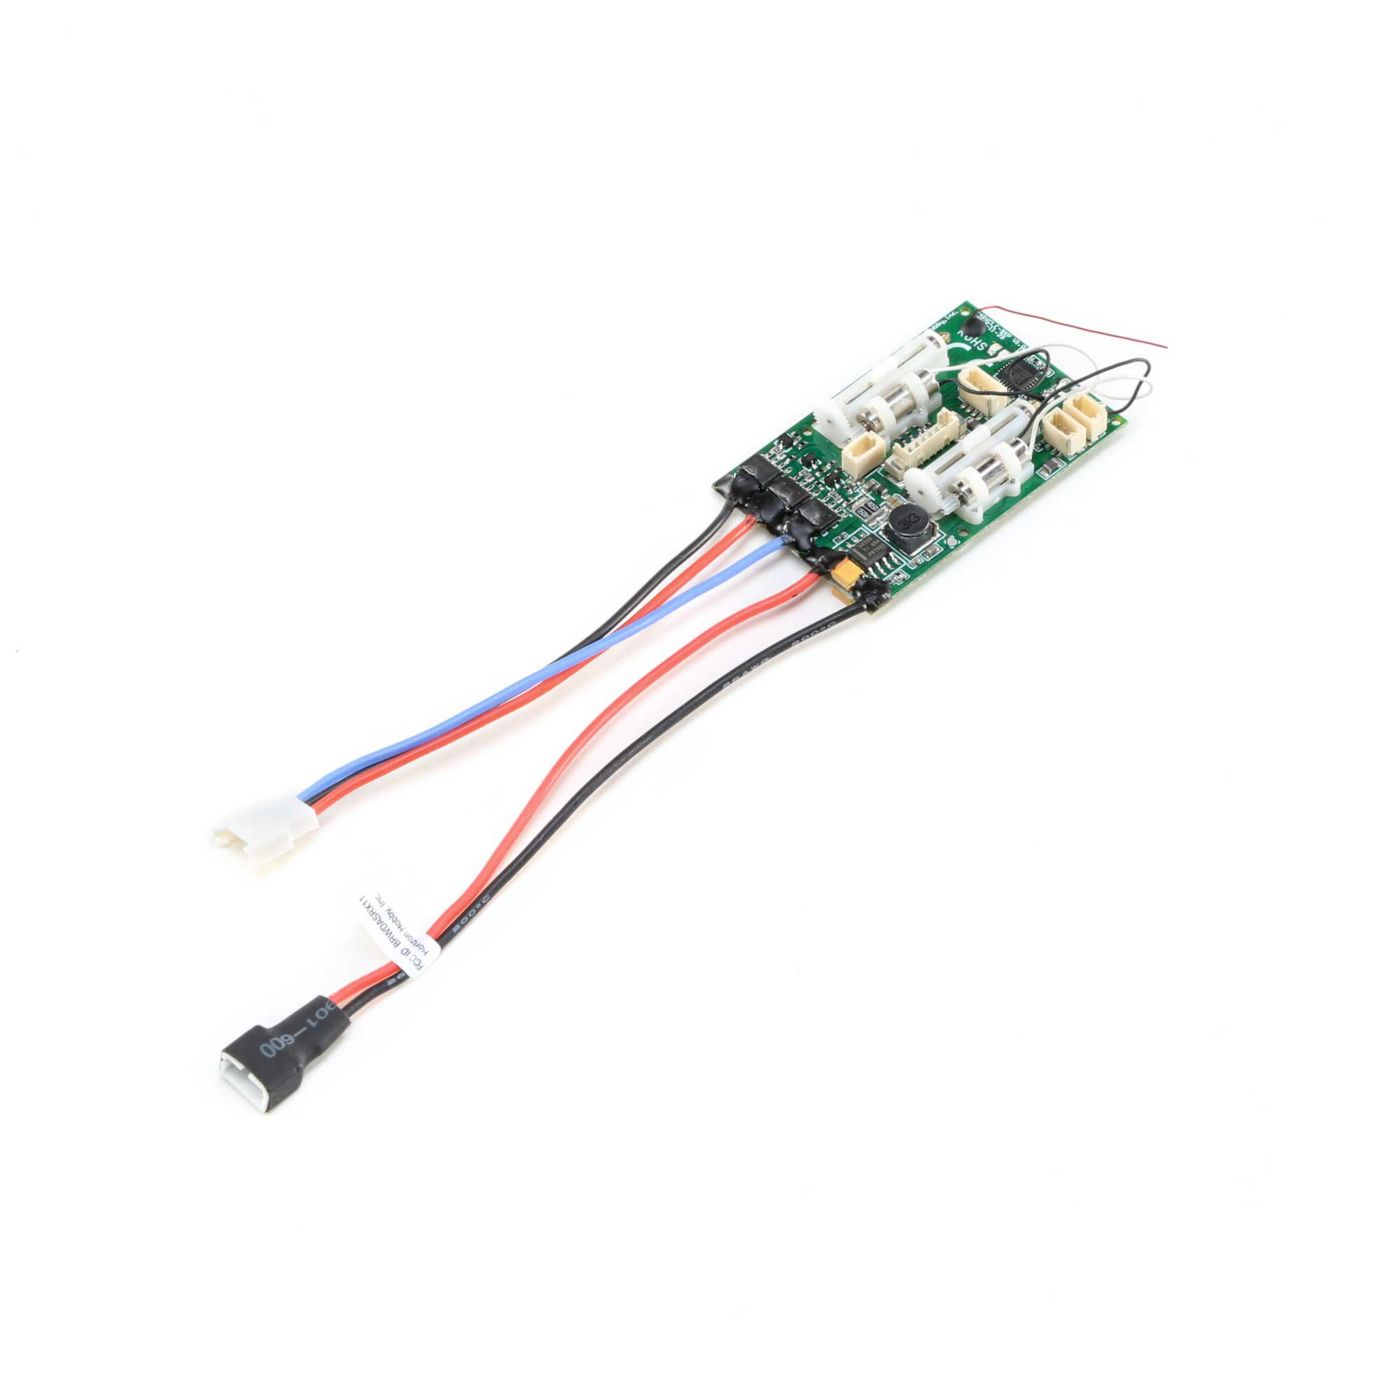 A6420BL DSMX 6-Channel Ultra Micro Receiver with AS3X, SAFE and Brushless ESC  (EFLA6420BL)